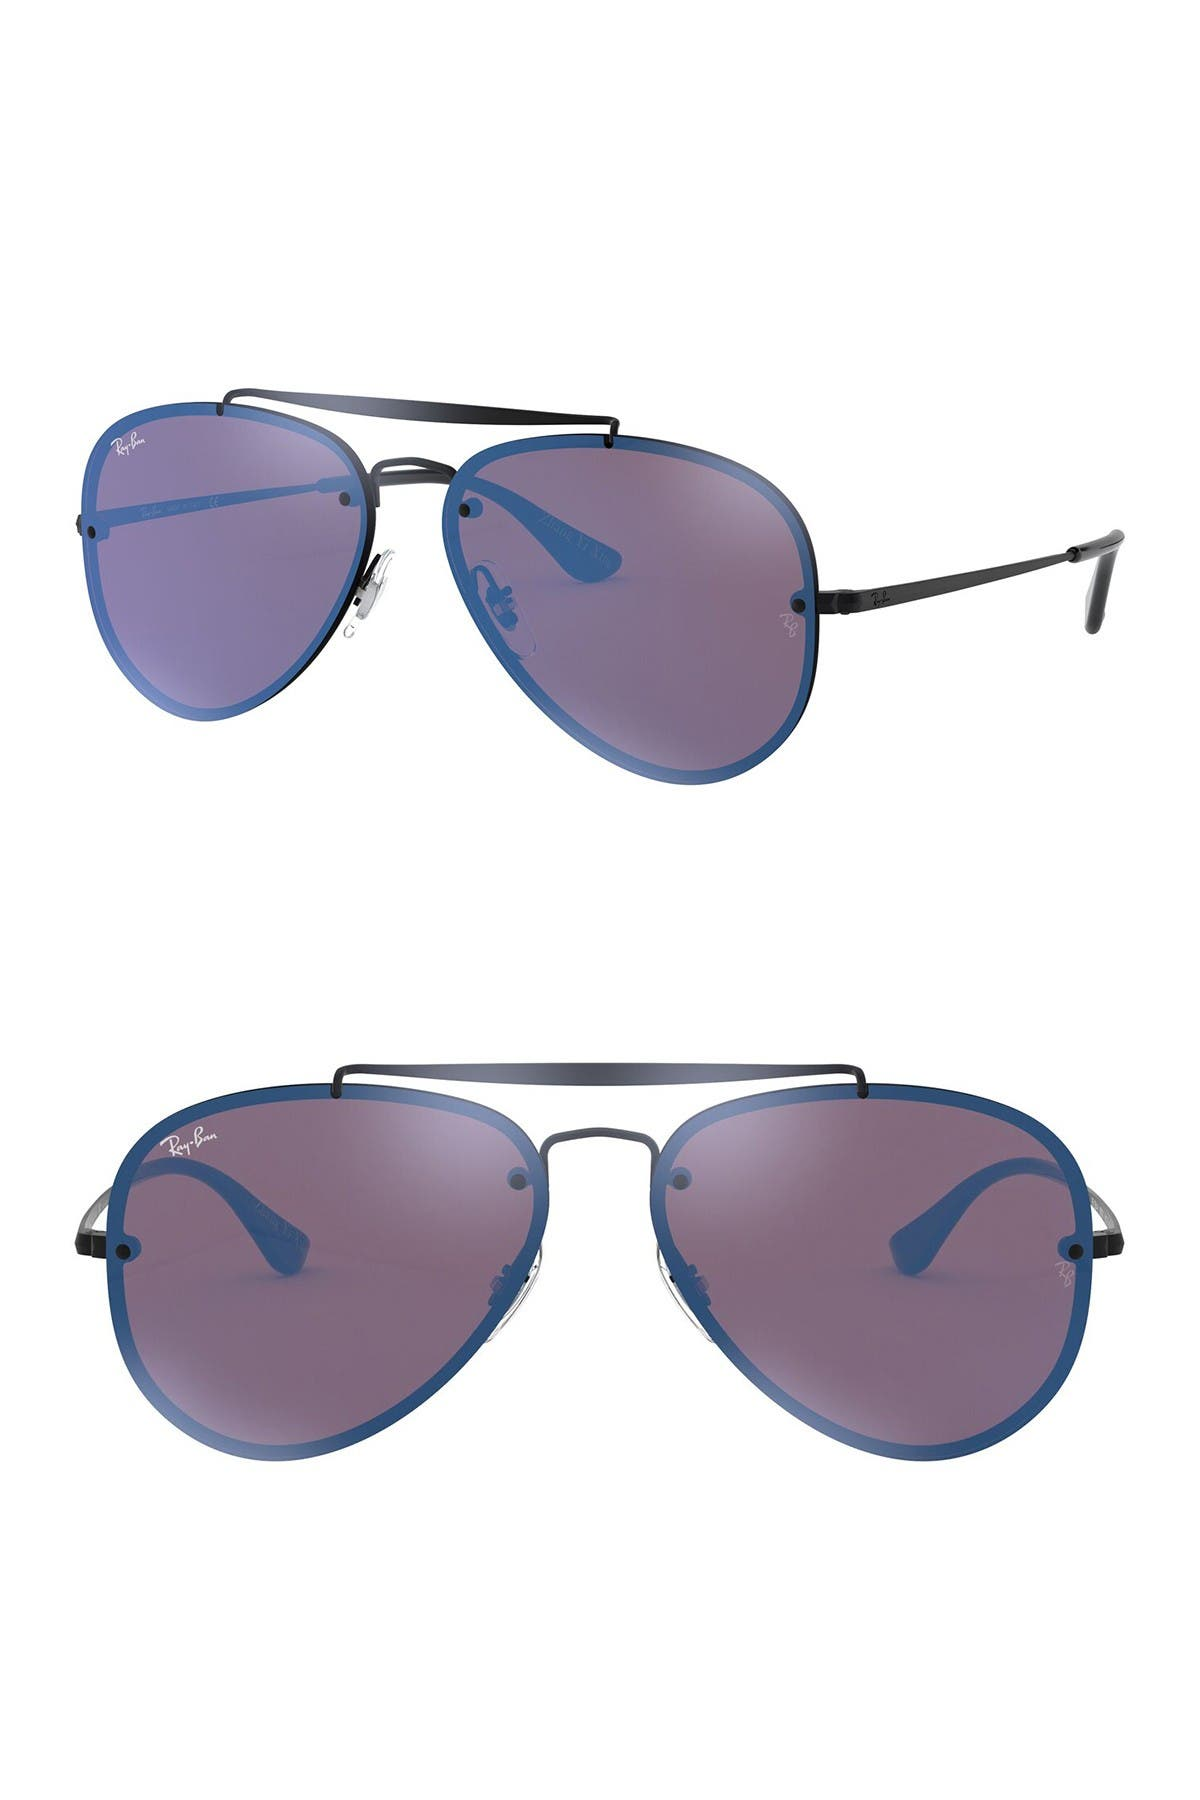 Image of Ray-Ban 61mm Mirrored Lens Aviator Sunglasses